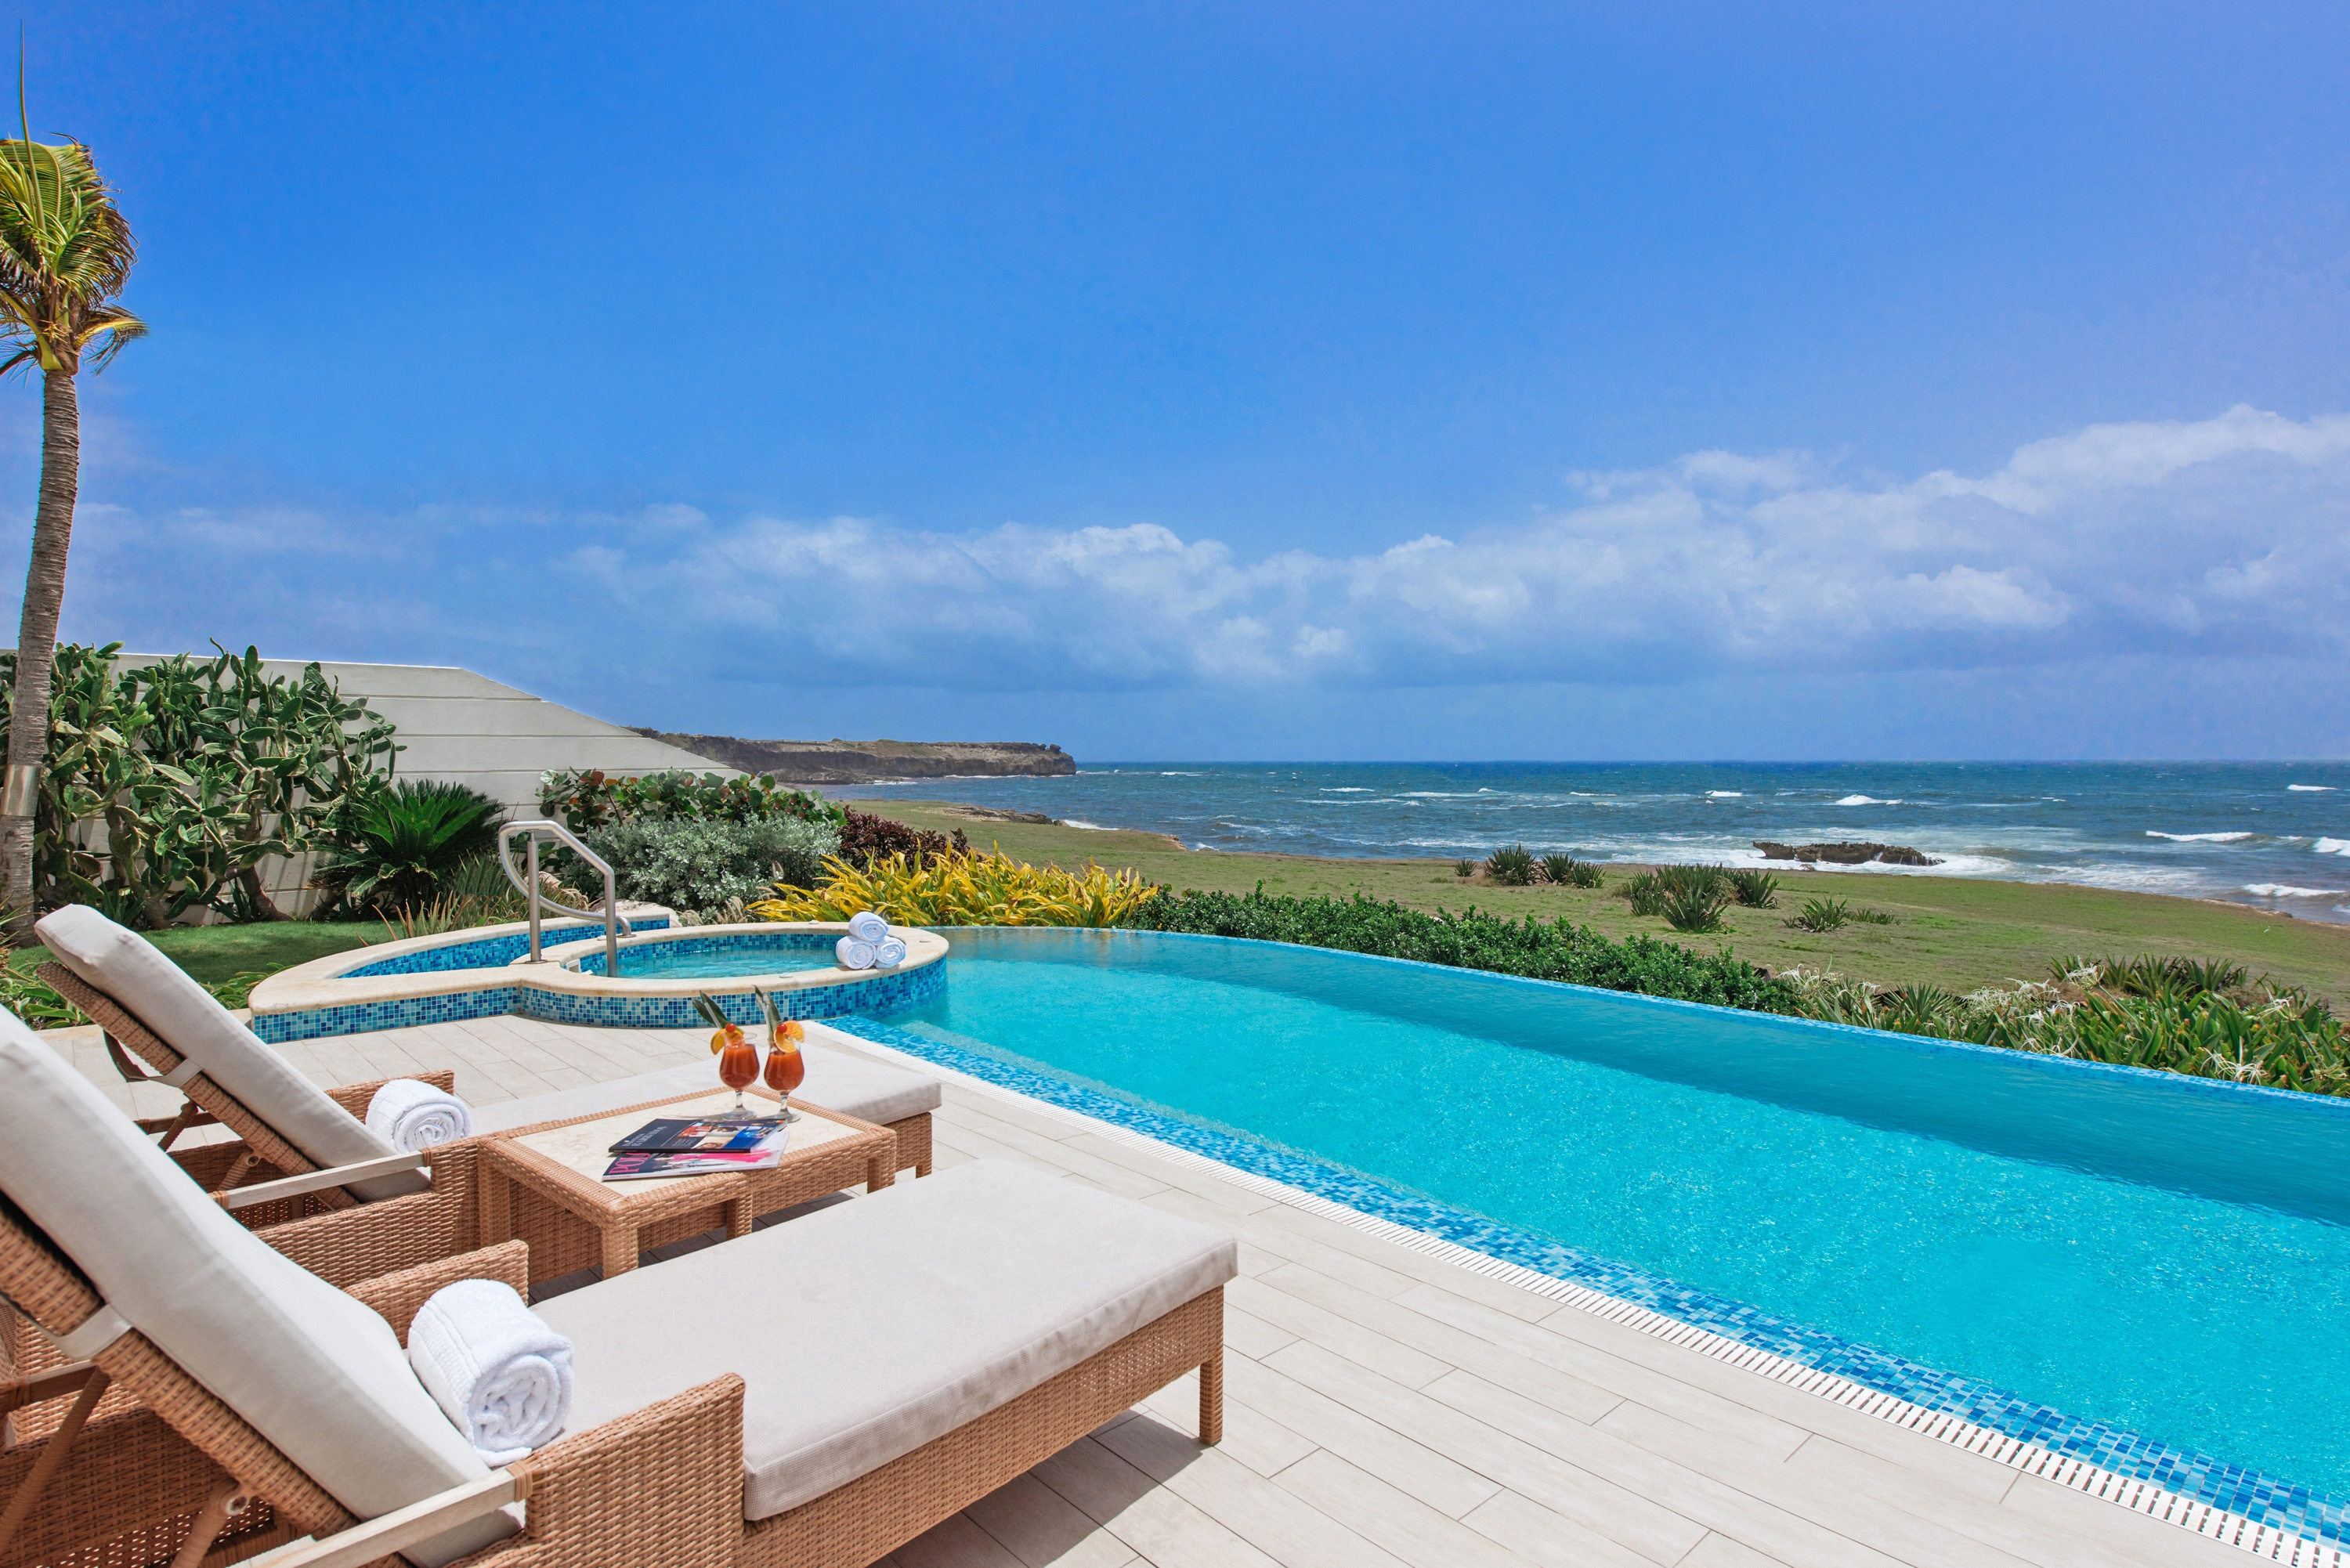 Investing in Barbados Luxury Real Estate: Trends to Watch